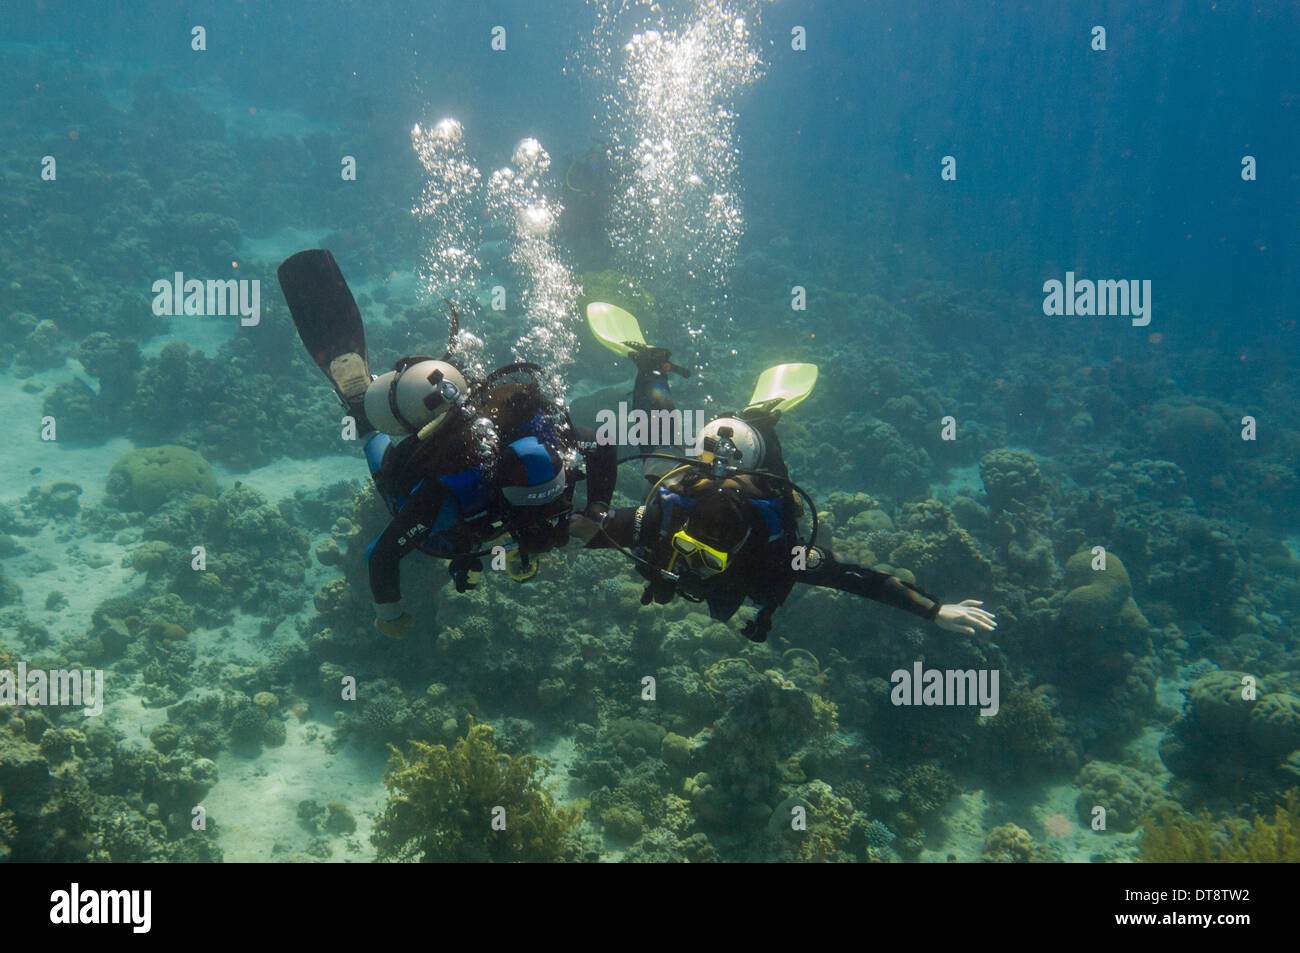 Divers in the Red Sea near Aqaba, Jordan - Stock Image